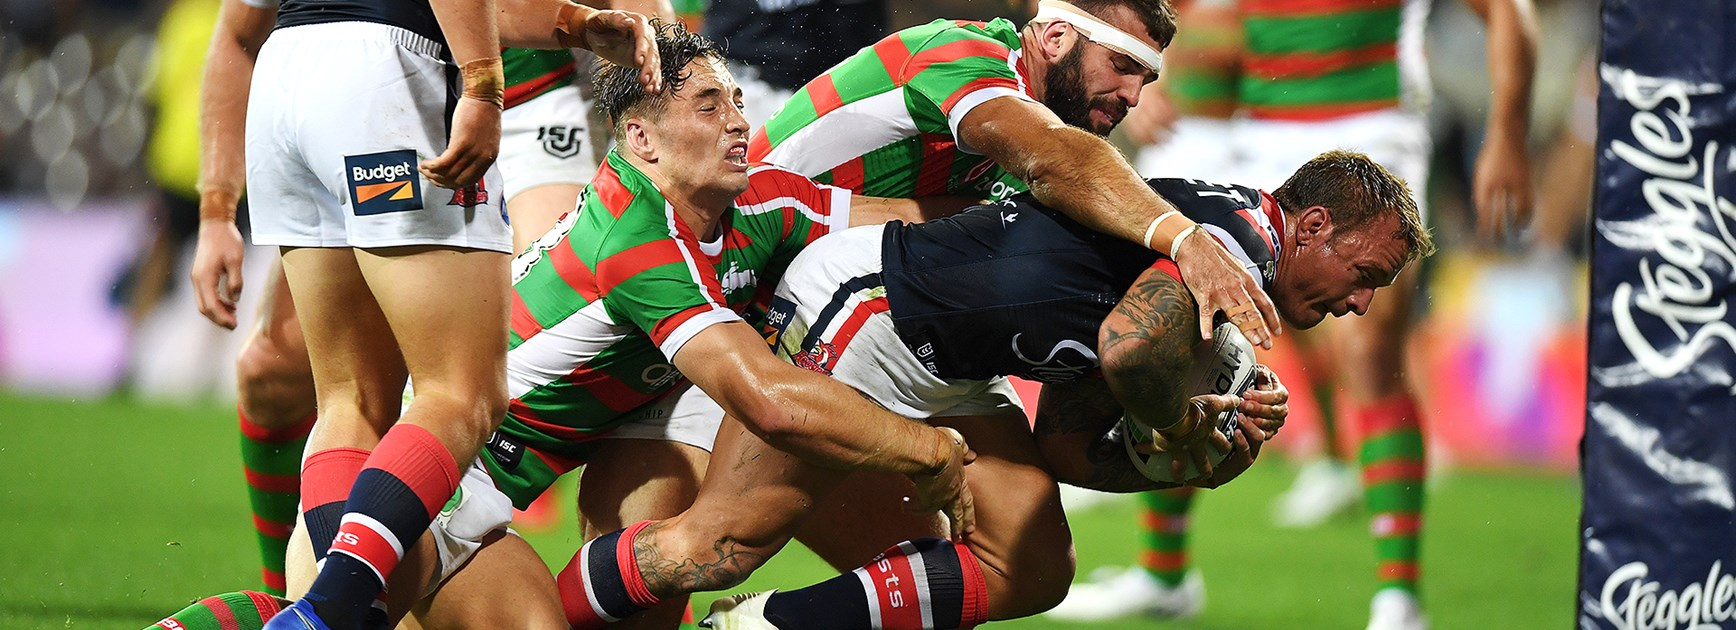 Rabbitohs launch Bennett era in style by rolling Roosters